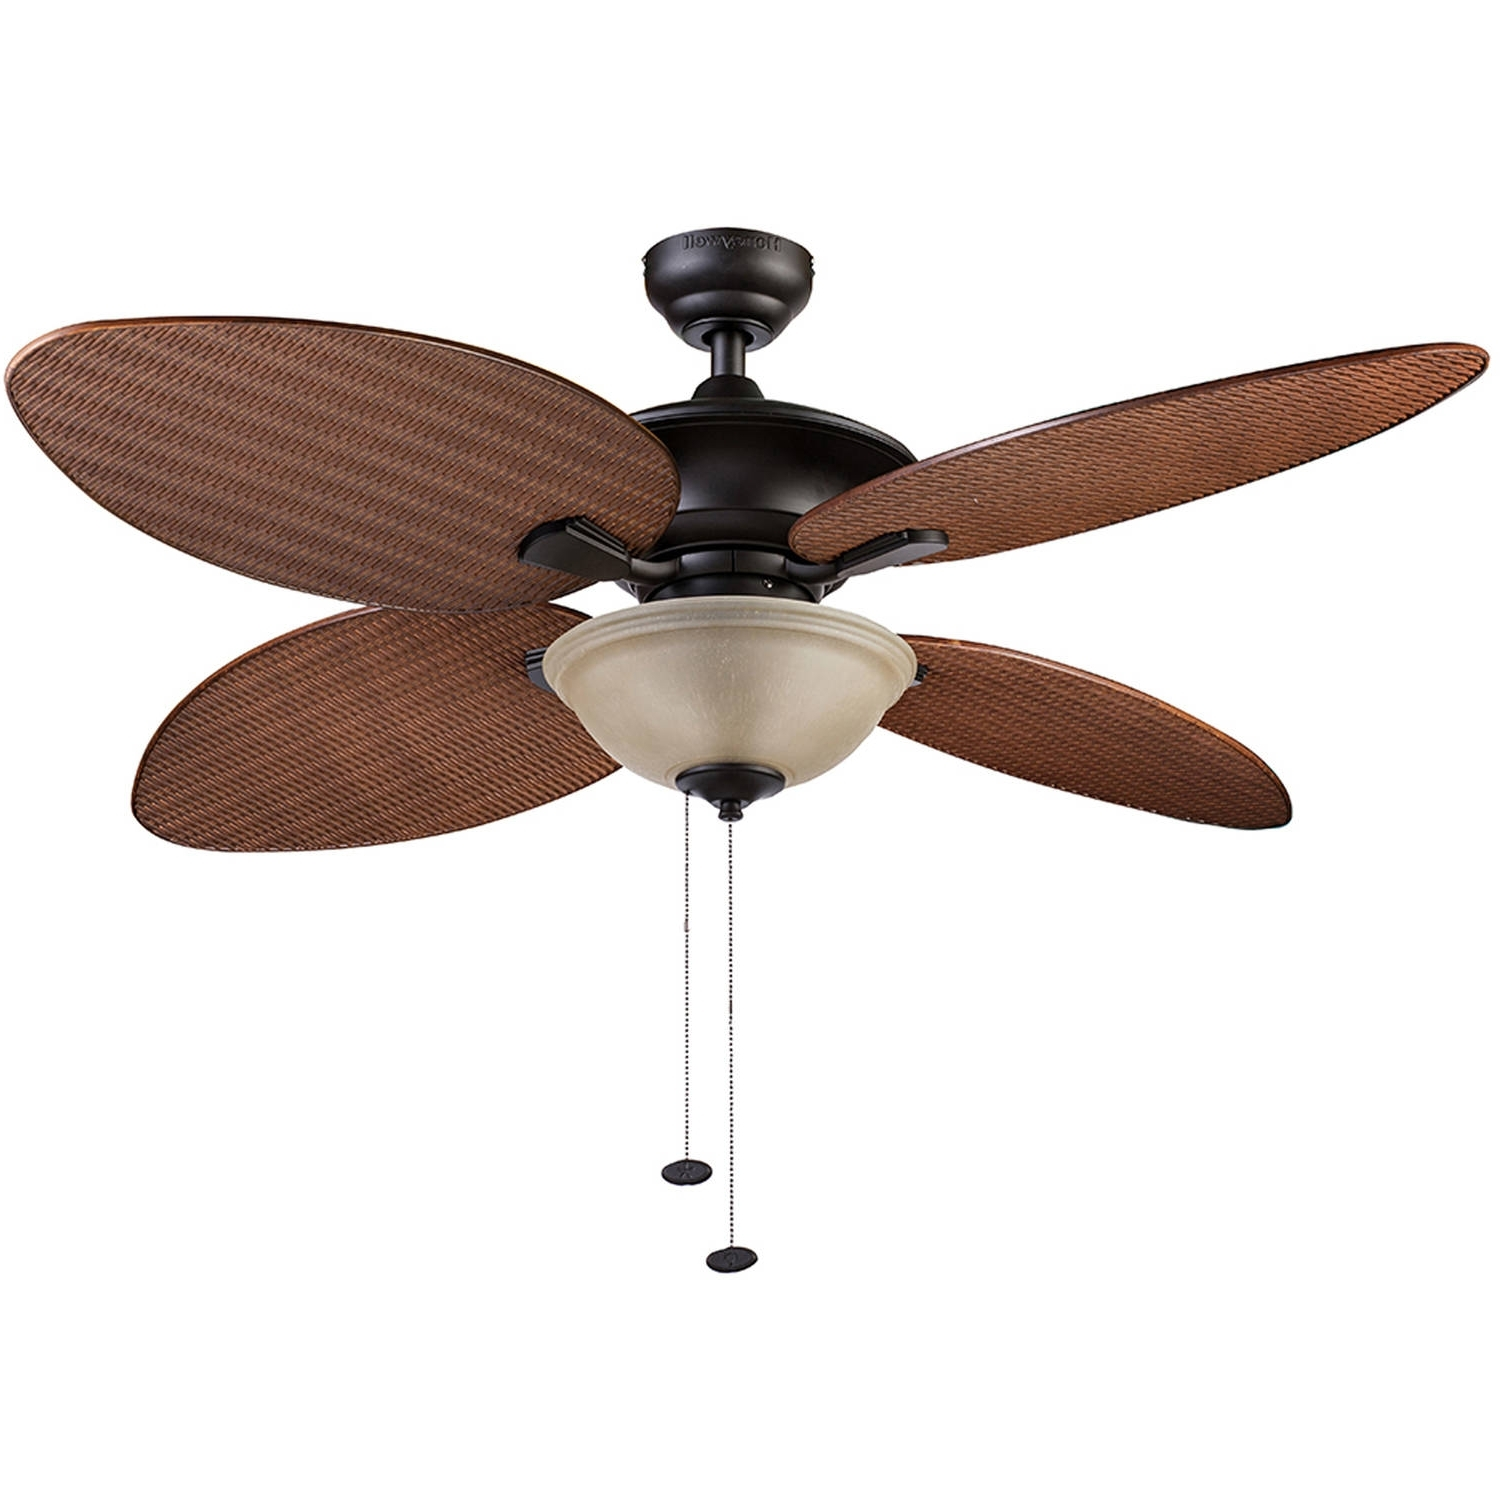 Featured Photo of Outdoor Ceiling Fans with Lights at Walmart